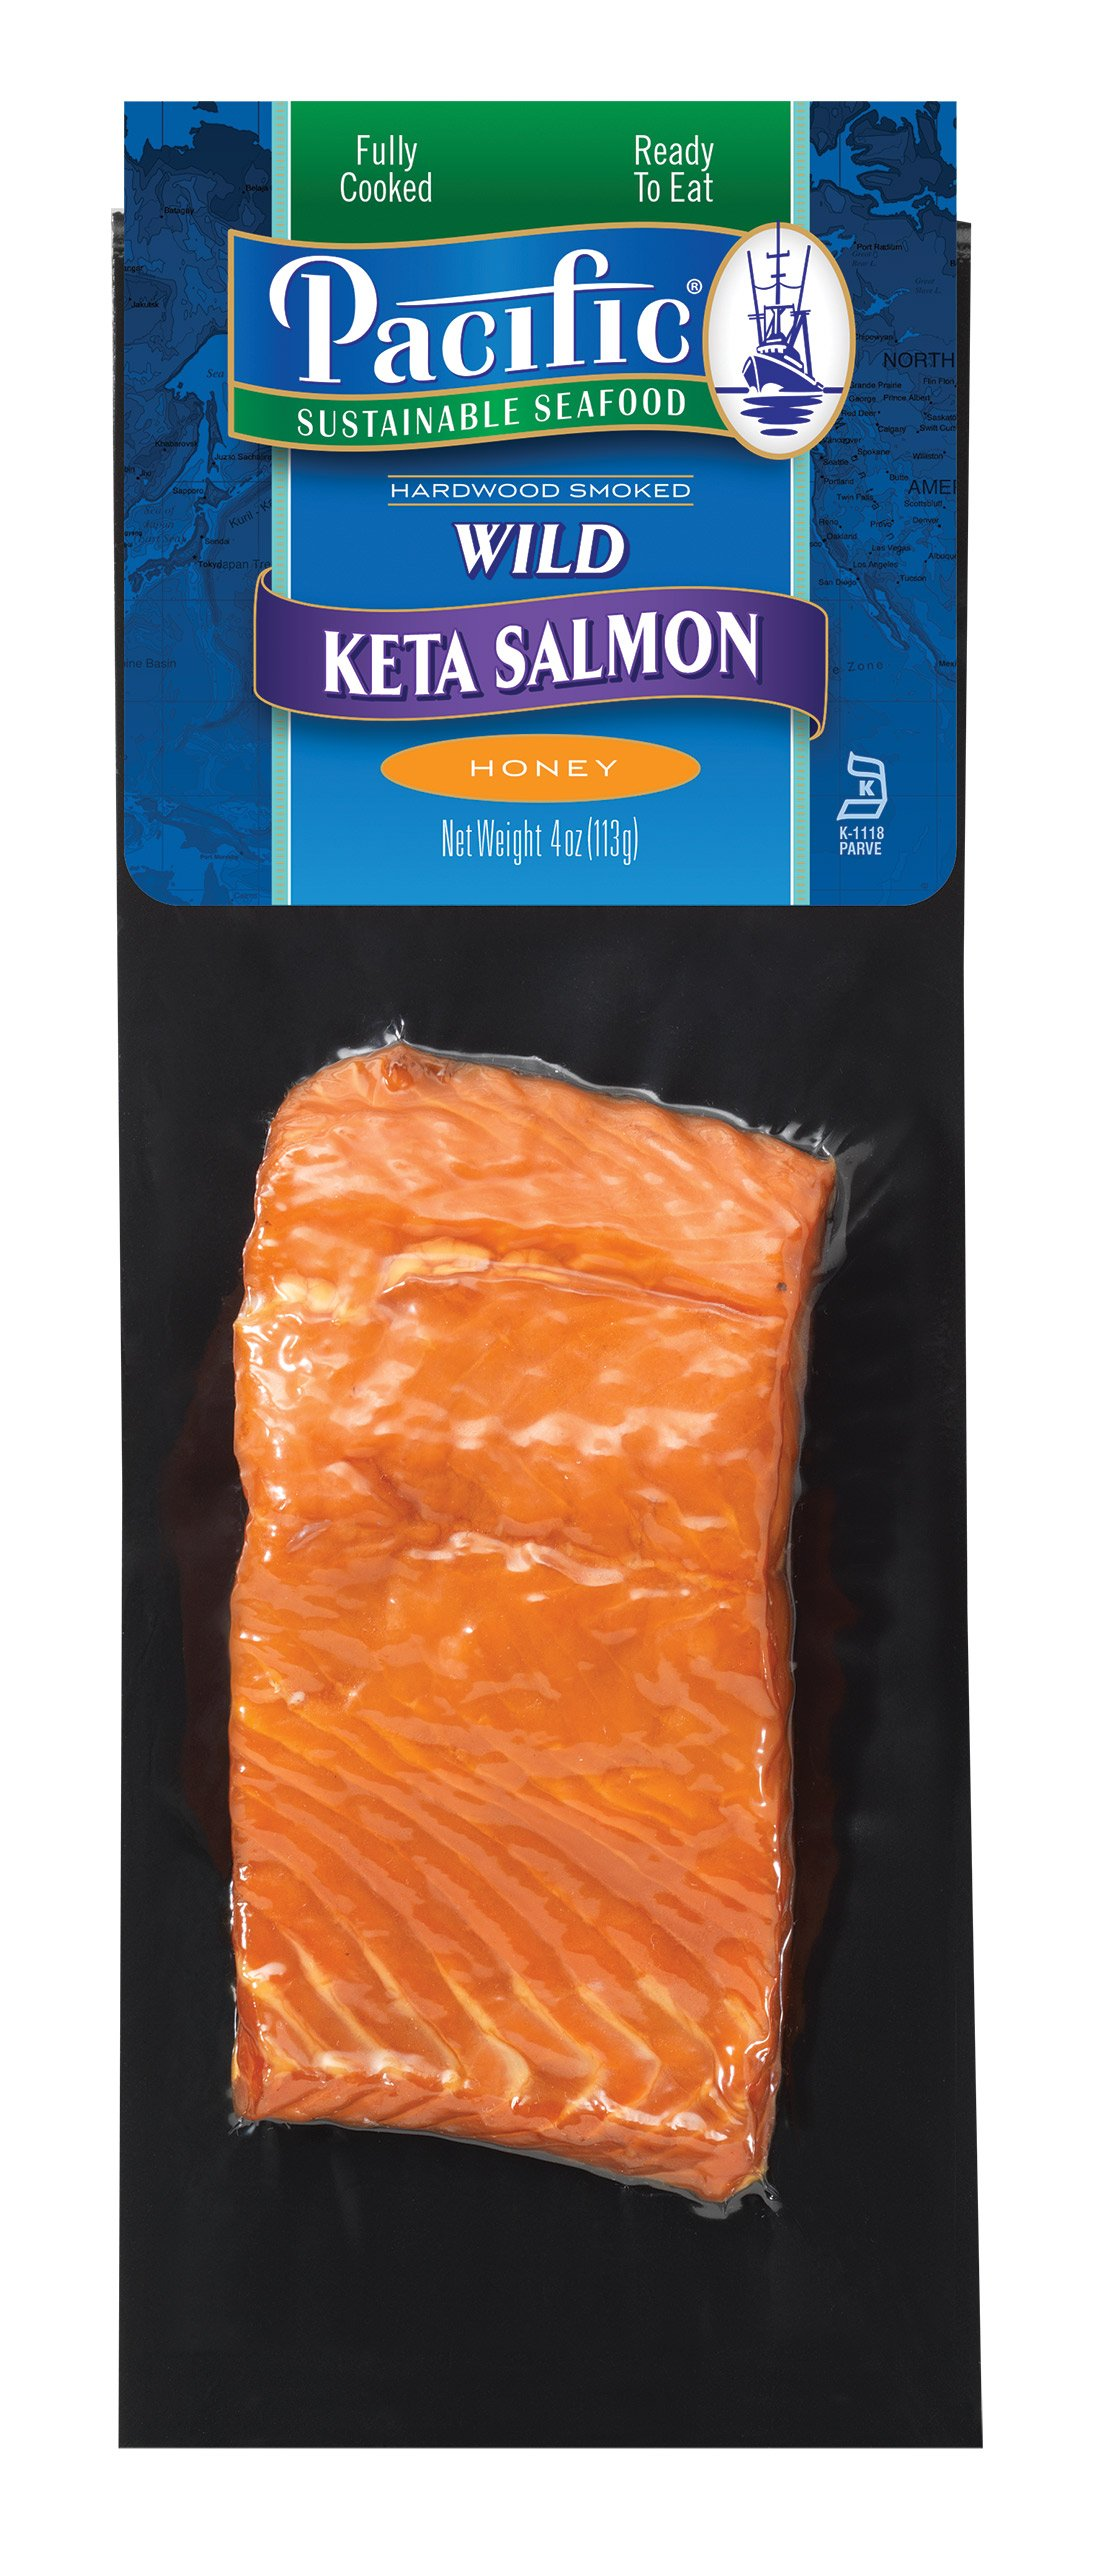 Smoked Salmon Port Keta Frozen, 3 lbs Total, 4 Oz Honey Hot Portions by Newport